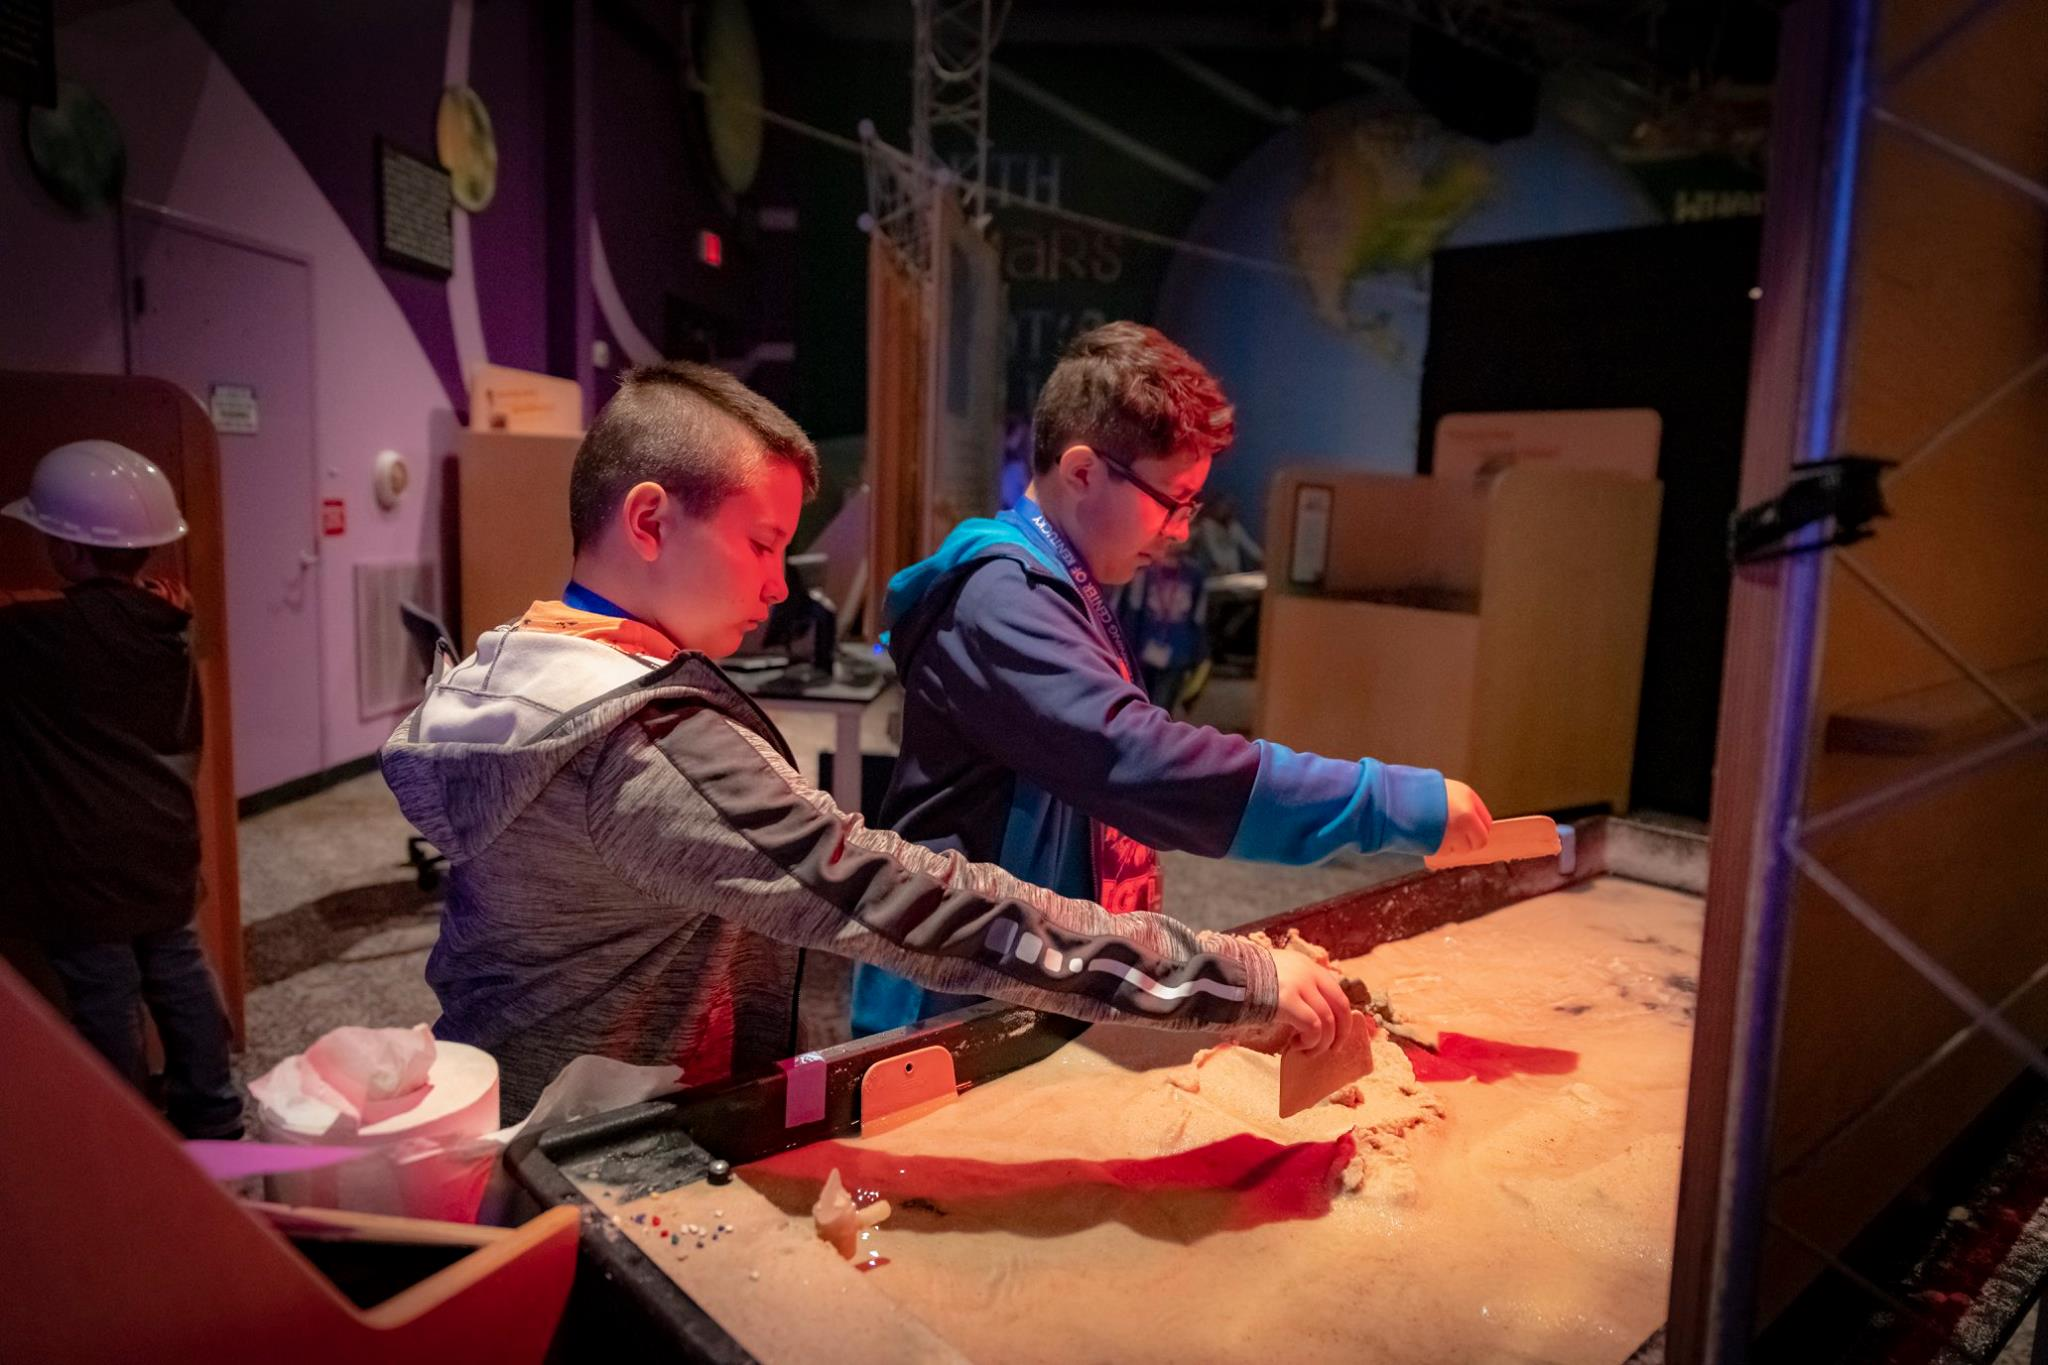 Mars Invasion Party - Come Explore Mars for your Birthday! In Mars Invasion, you'll learn all about Mars while you check out cool exhibits using Virtual Reality, our Flight Simulator, Magnetic Fluids, and more!